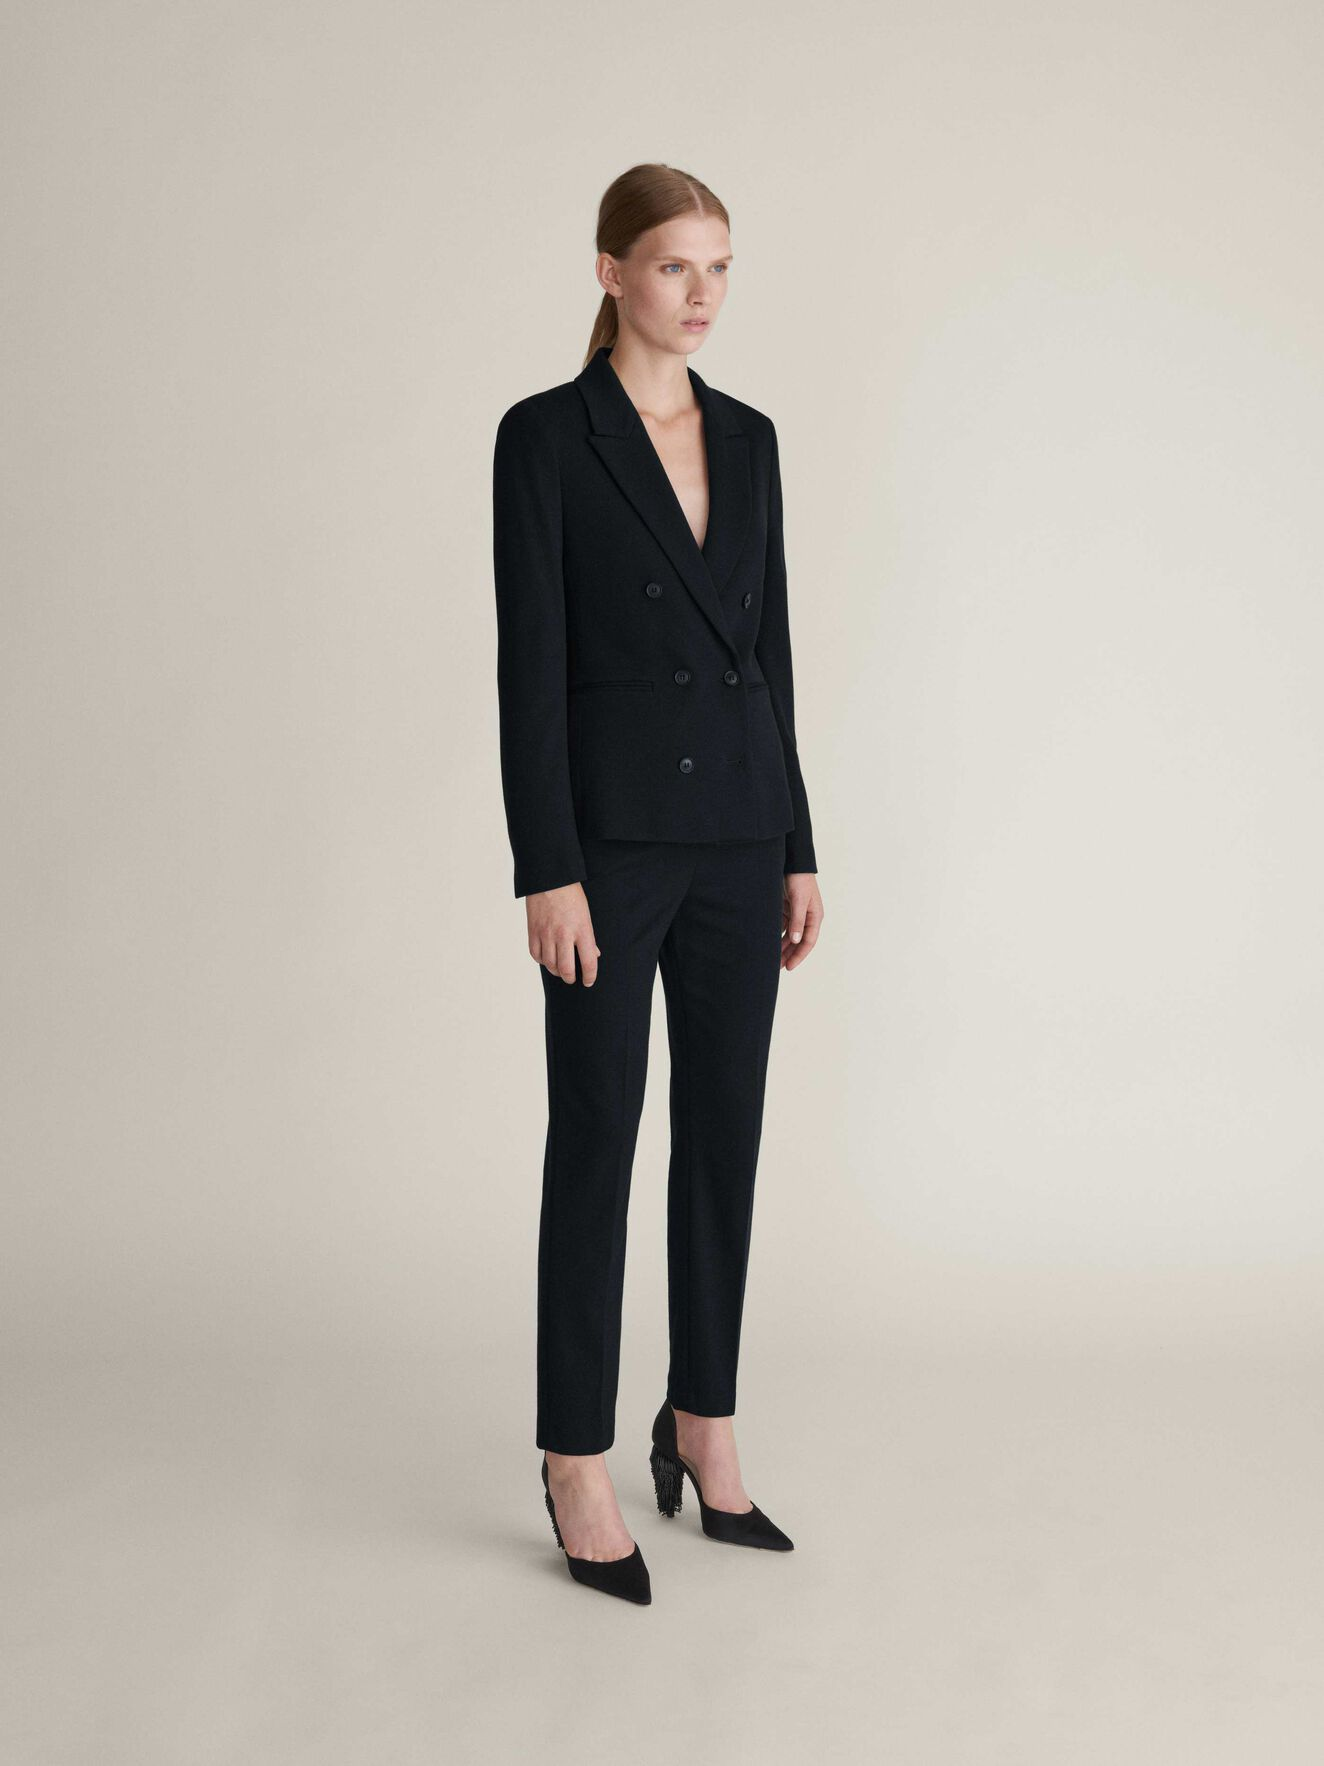 Molena Blazer in Midnight Black from Tiger of Sweden